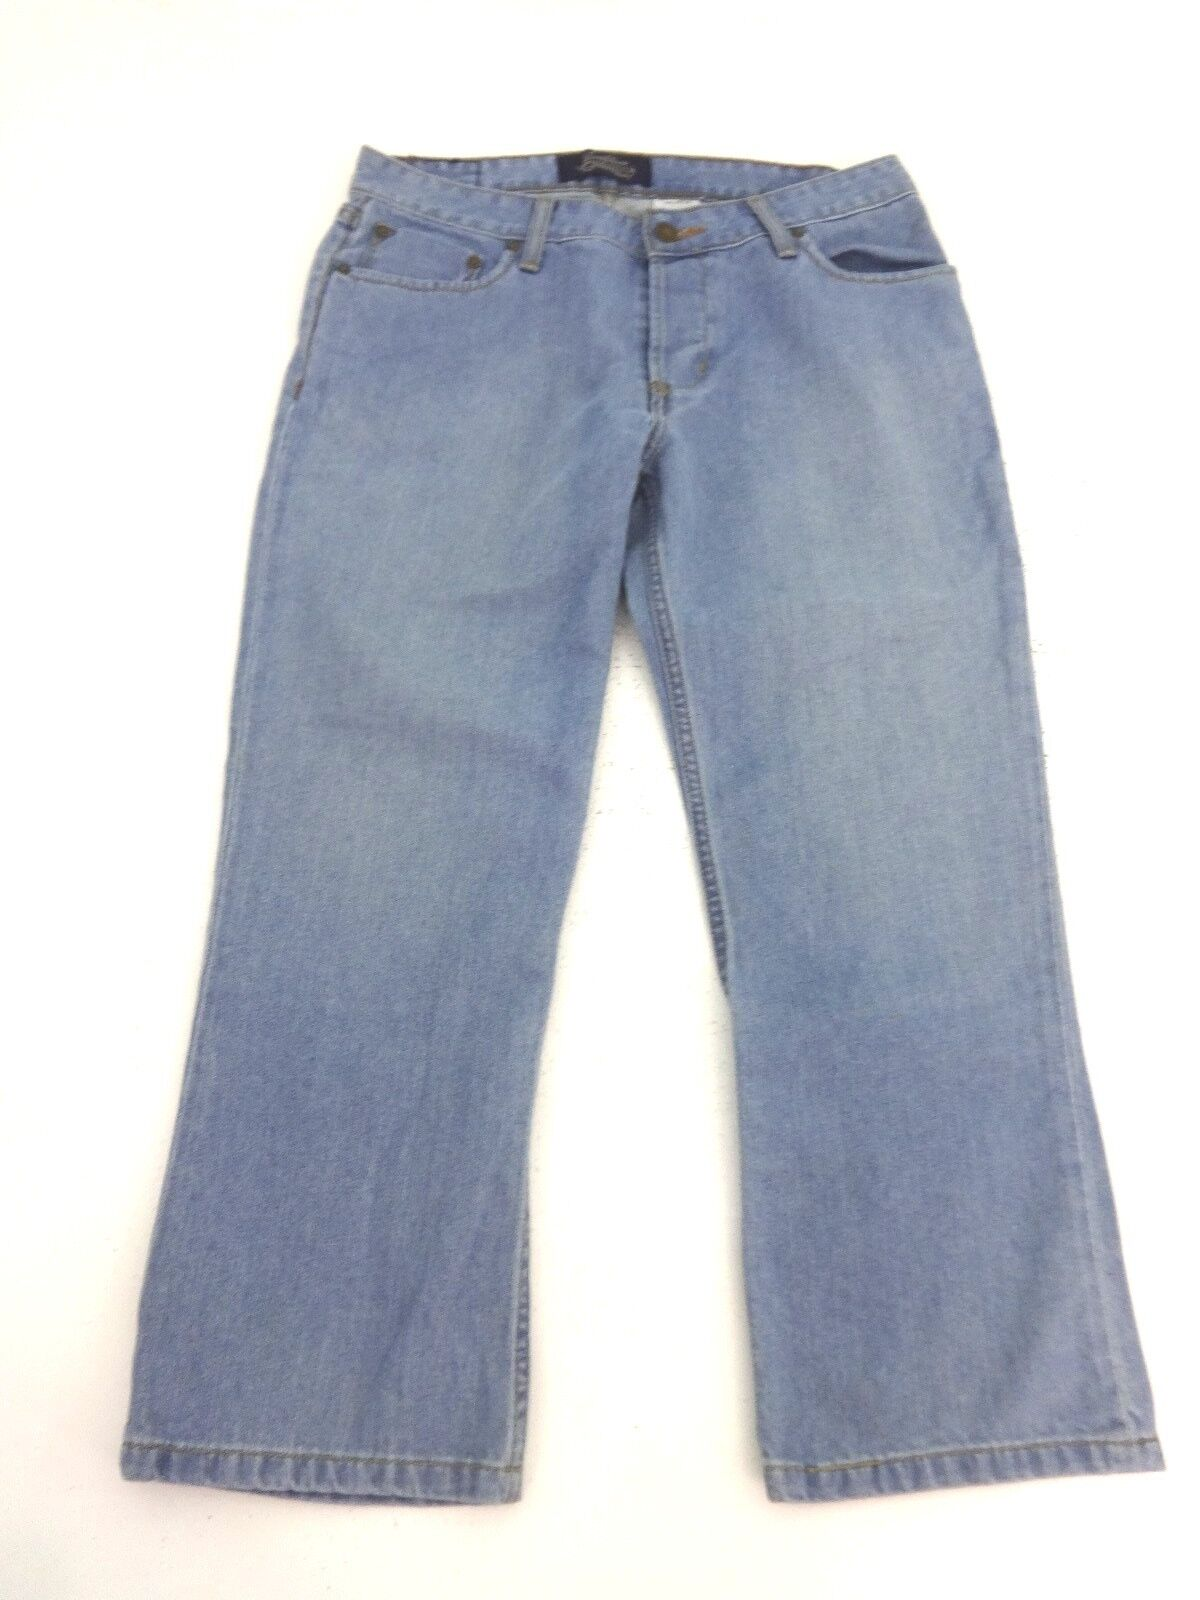 Capri Ebay Light Jeans Levis Signature 11 Wash Womens Size Cropped PwZApWqxxO